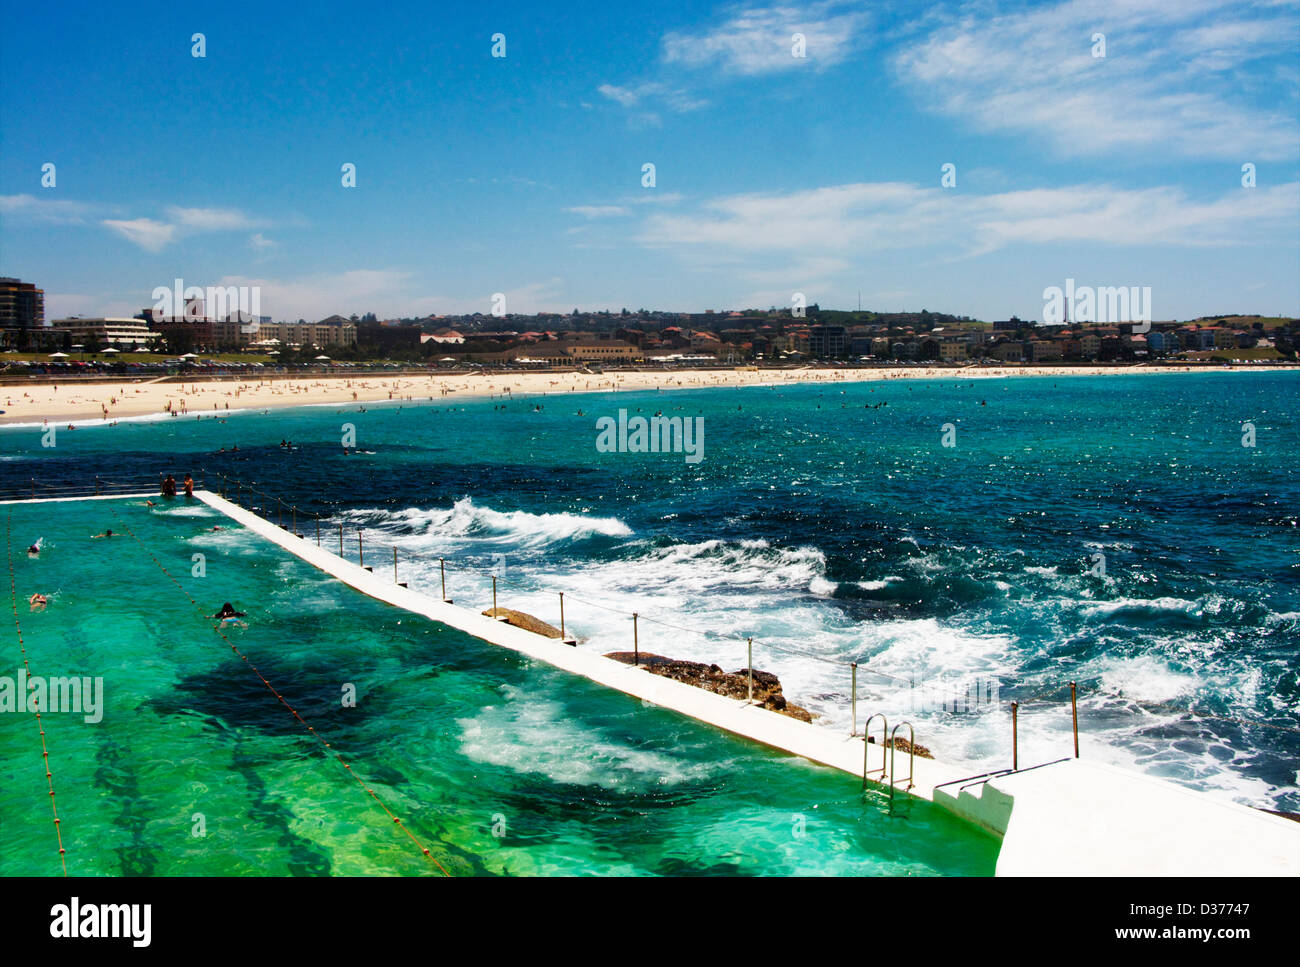 The Outdoor Sea Bondi Baths Swimming Pool At Icebergs Restaurant At Stock Photo Royalty Free